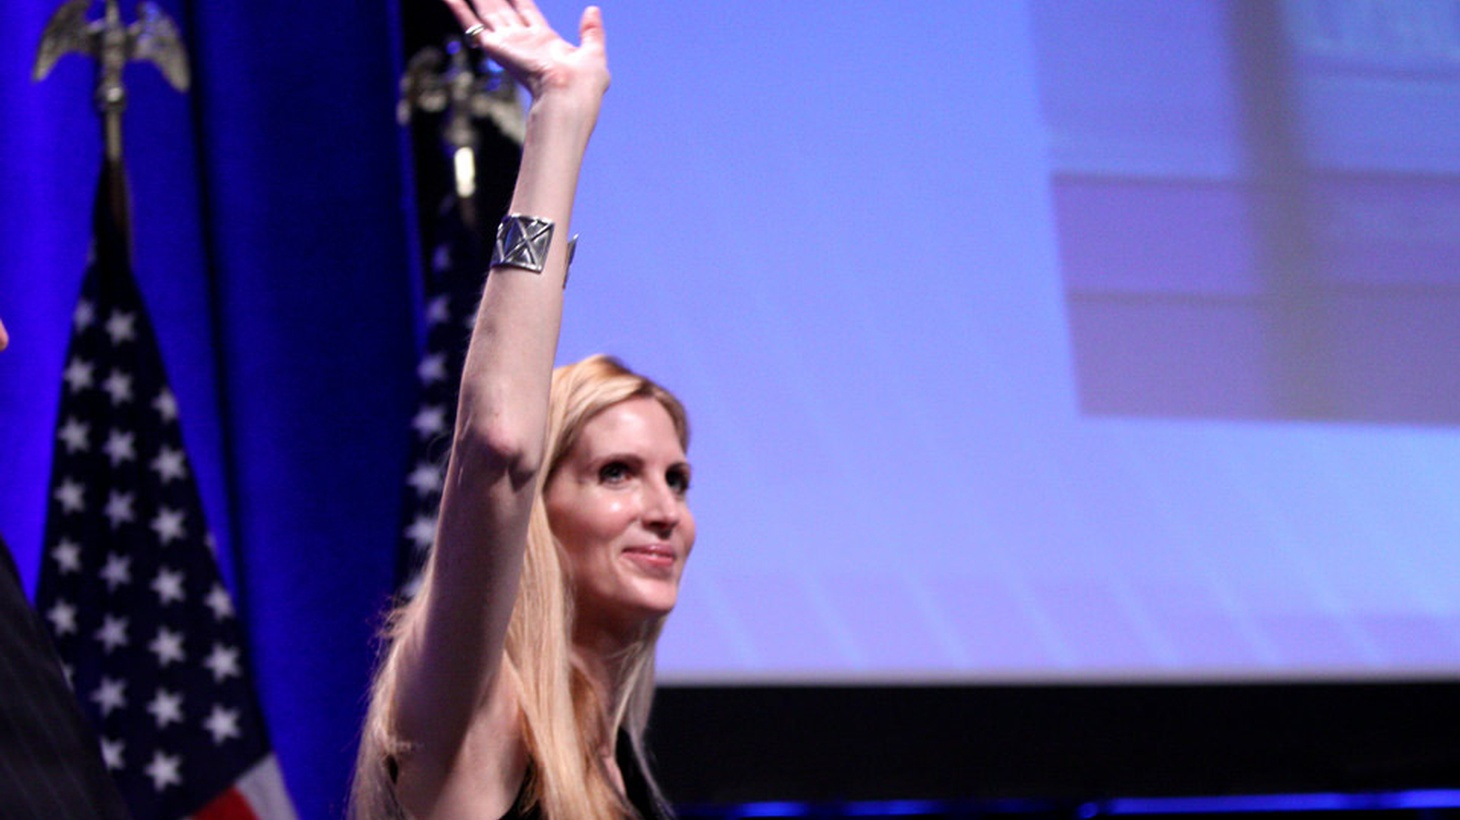 Conservatives claim that American colleges and universities are bastions of liberal orthodoxy, shielding students from alternative ways of thinking. What better place for a protest than UC Berkeley? What better agent of controversy than Ann Coulter?